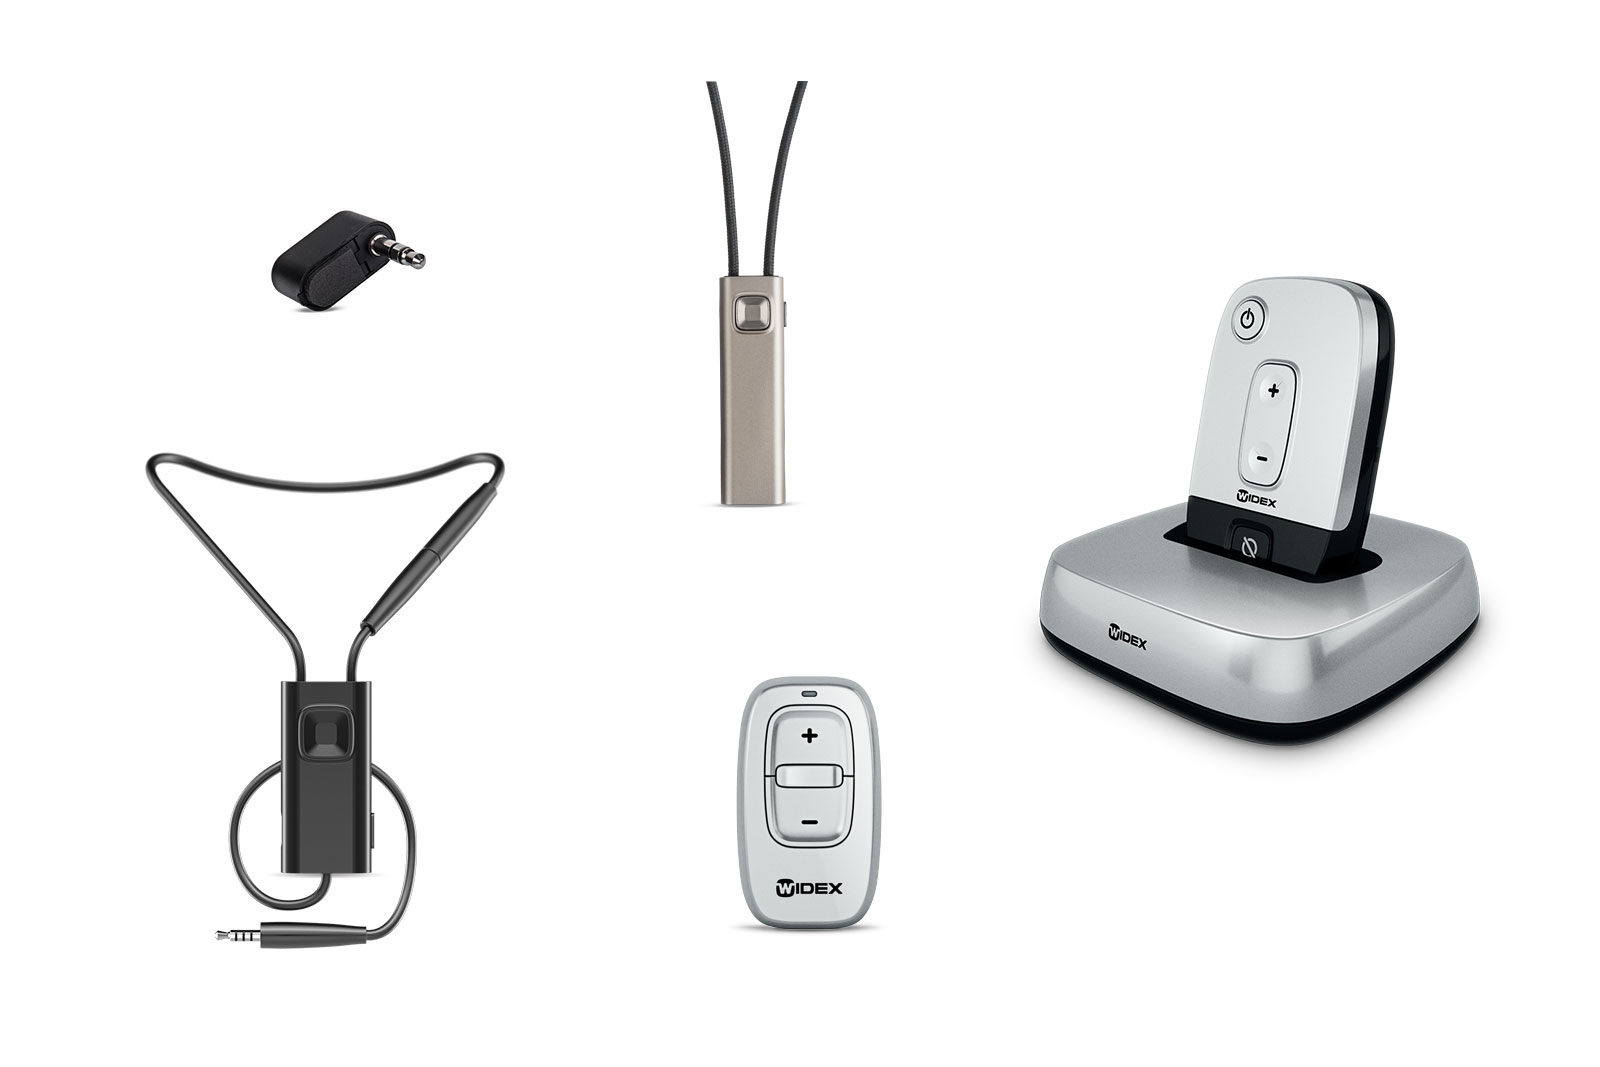 WIDEX DEX Wireless Accessories